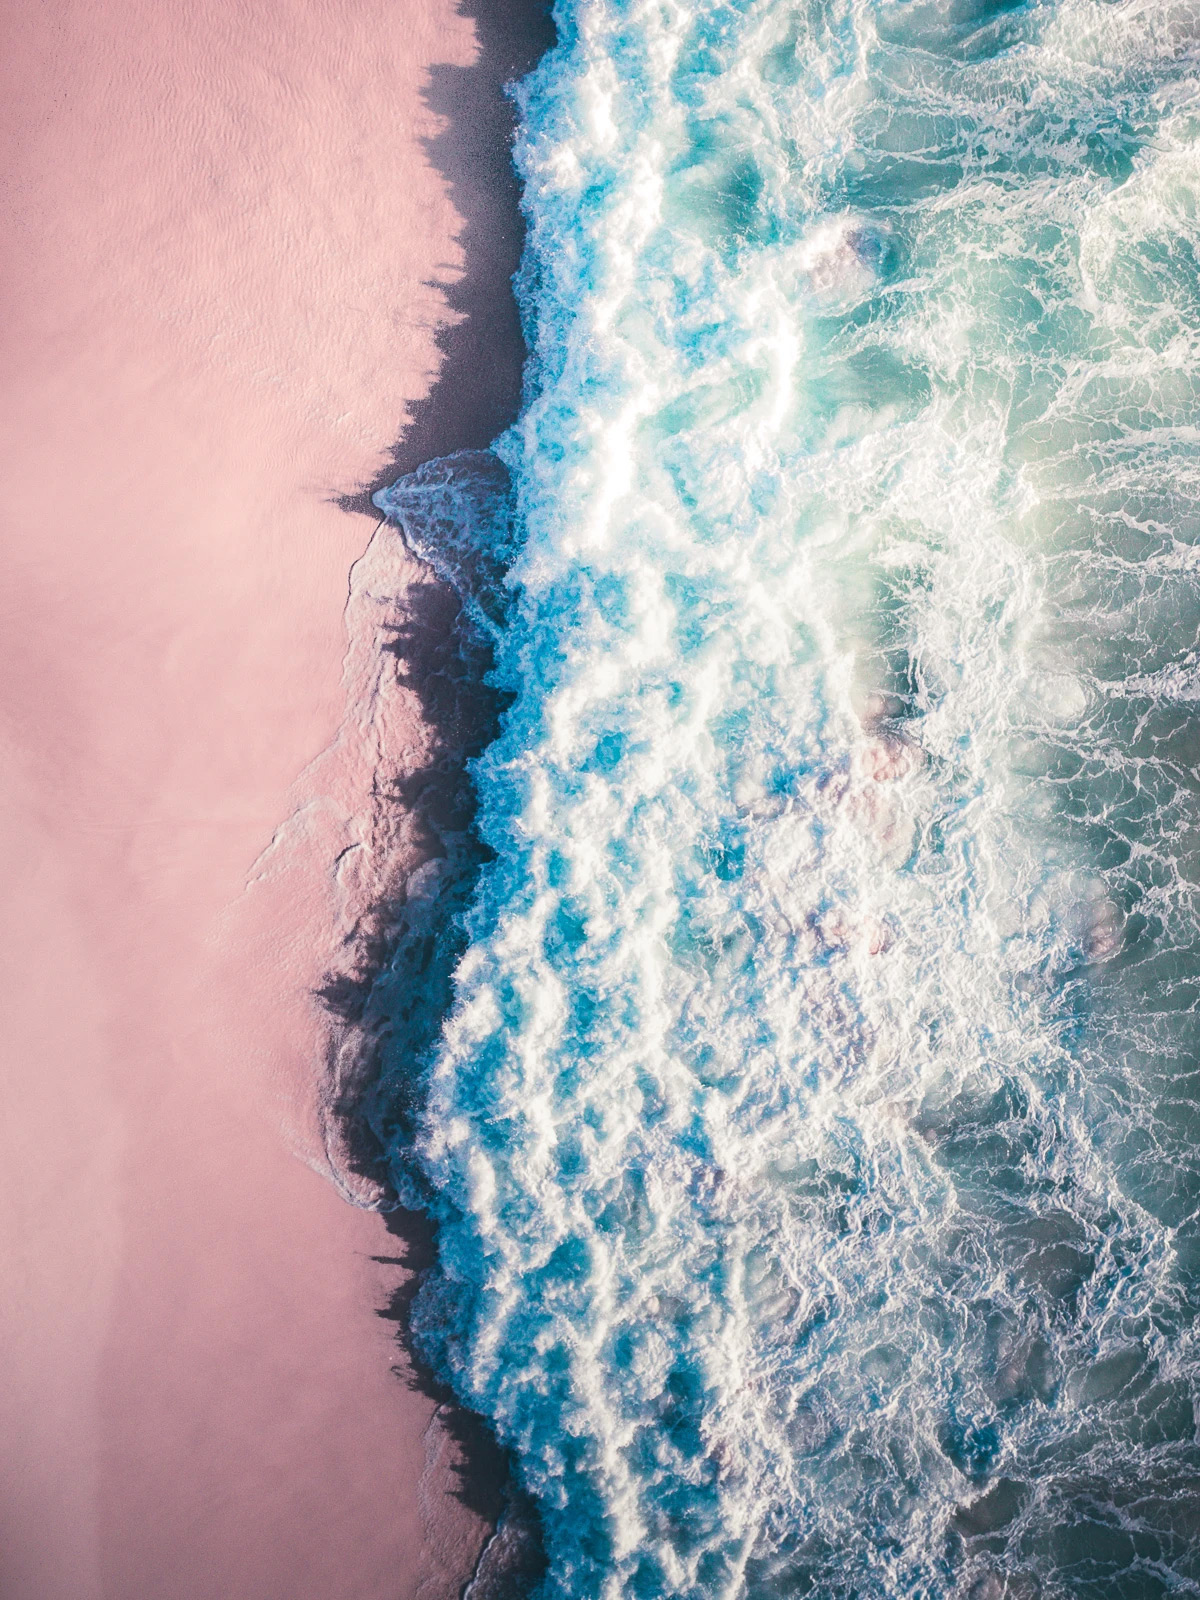 Bird's Eye View Photography by Tobias Hagg